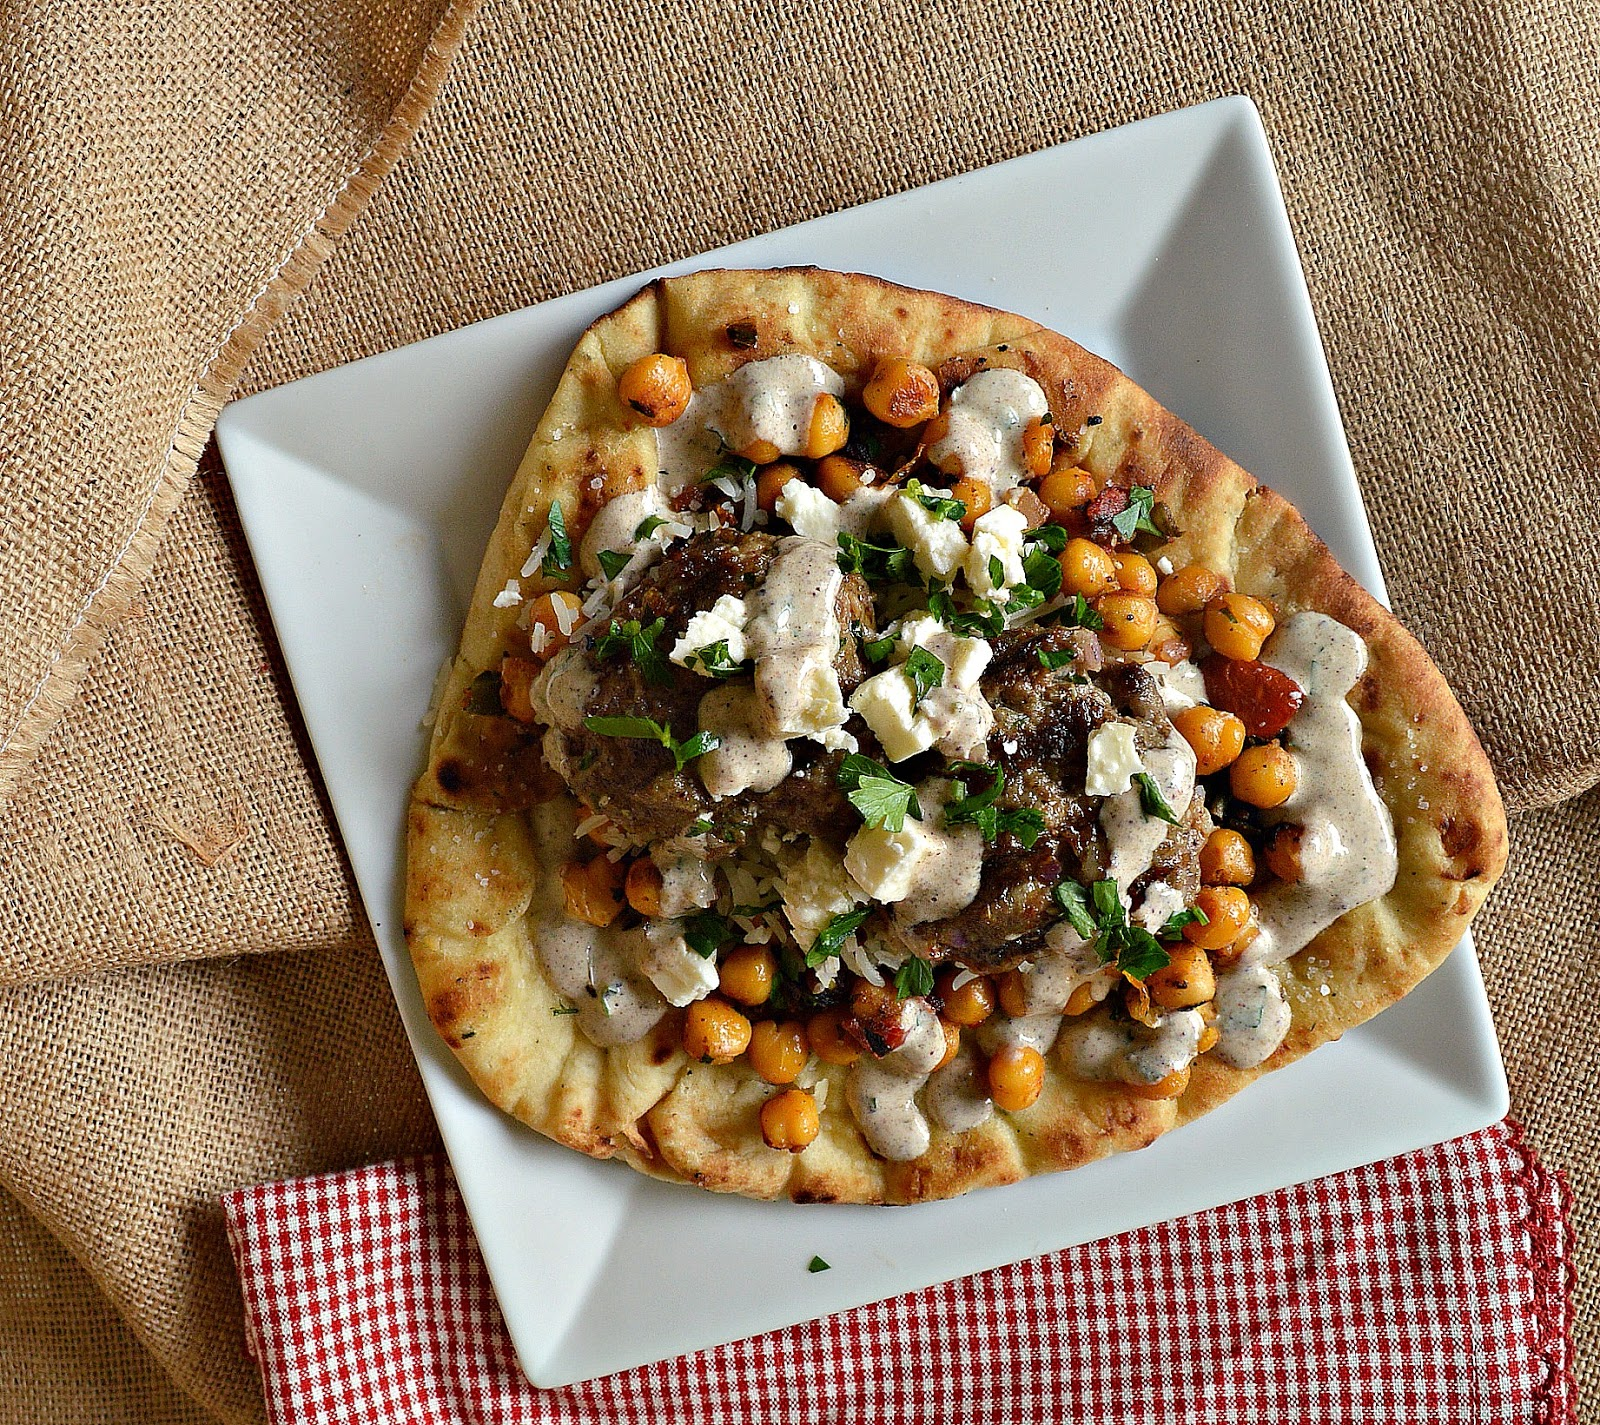 Zaatar chicken flatbreads with chickpeas and my little black book naan flatbread topped with fried chickpeas and grilled chicken forumfinder Gallery